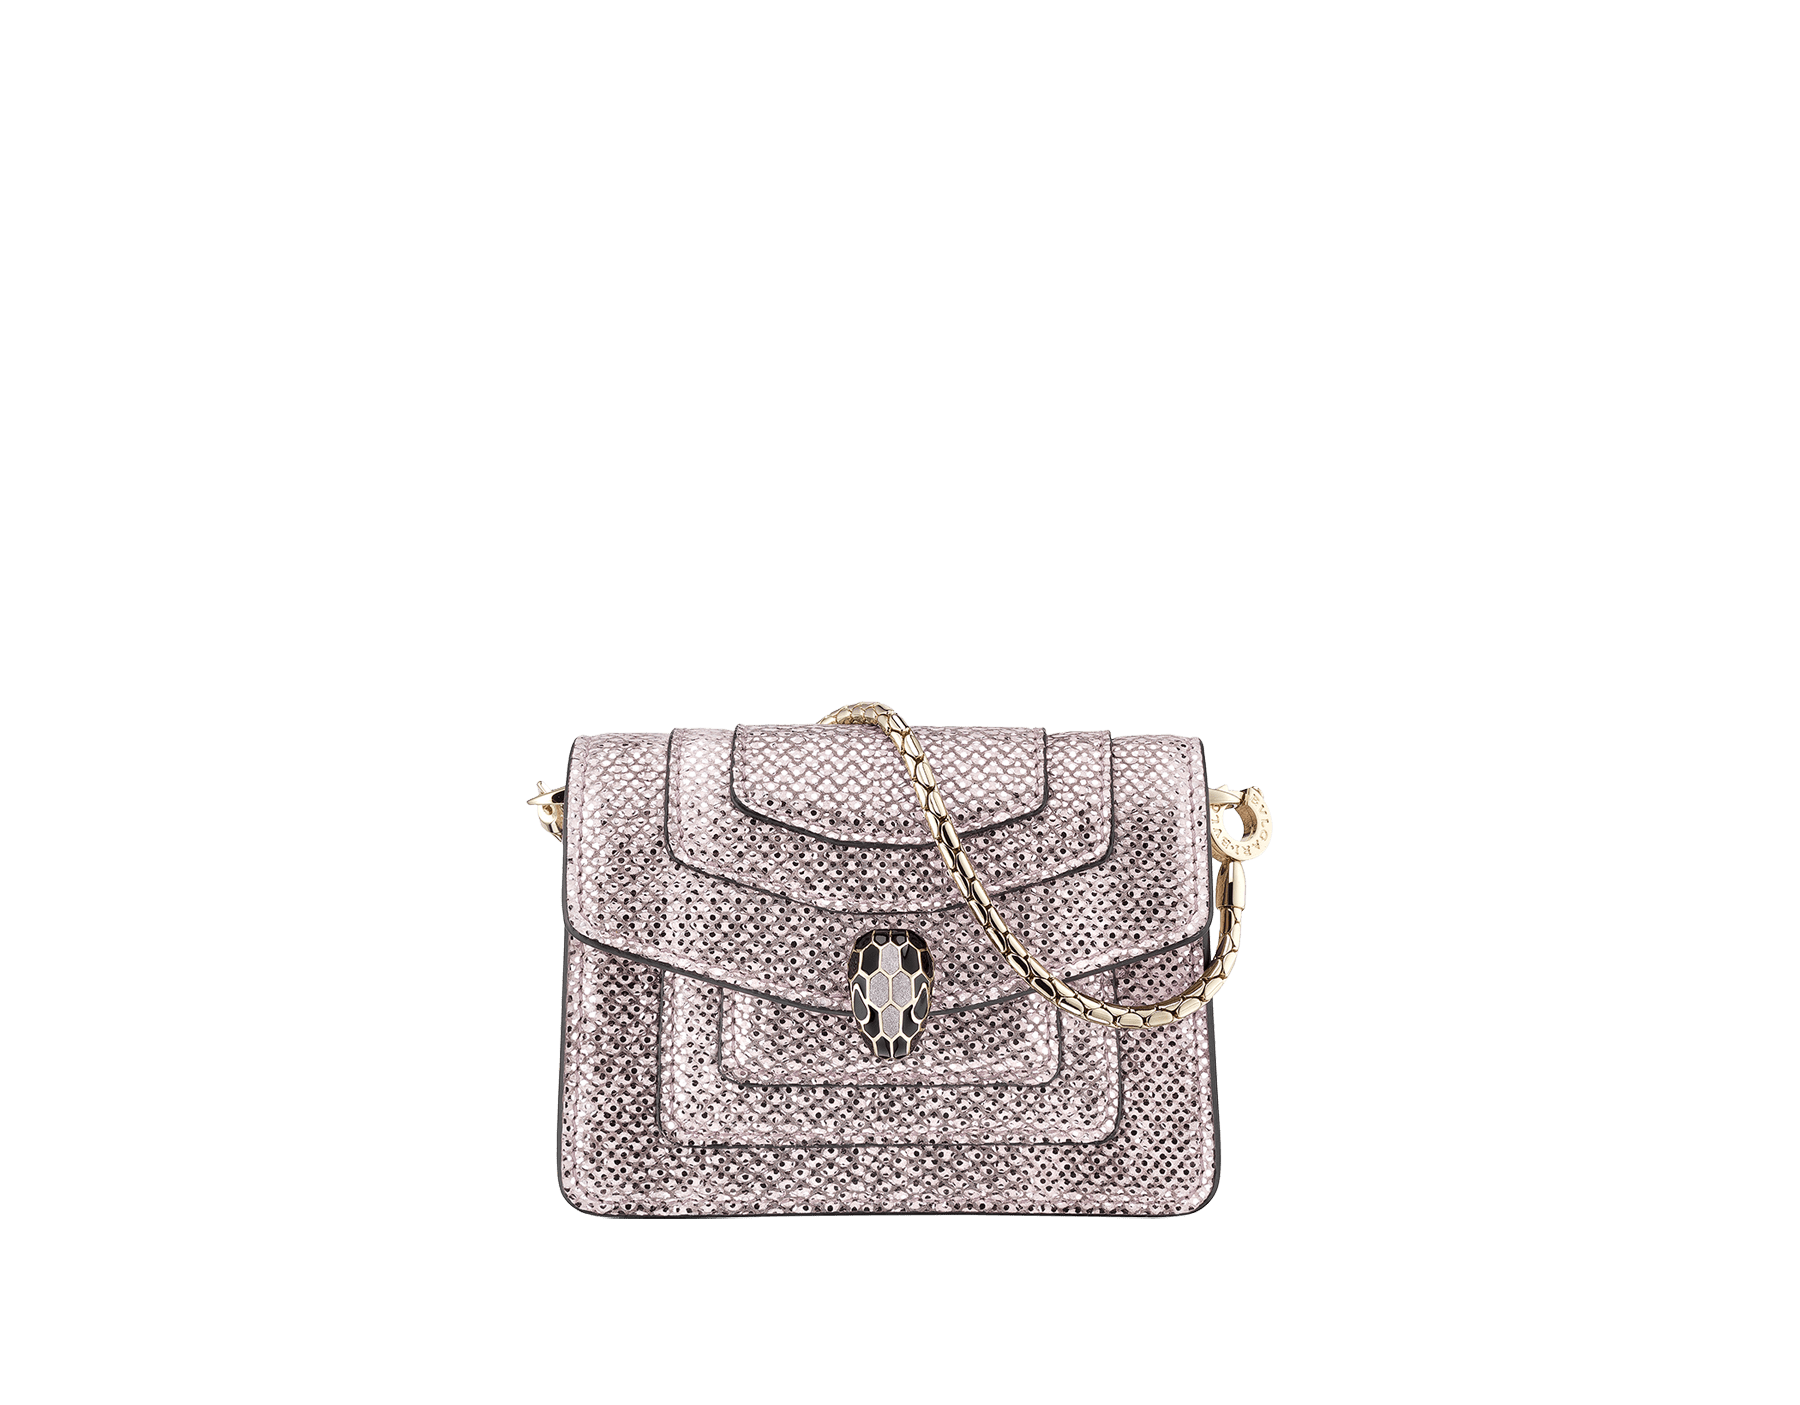 Serpenti Forever miniature bag charm in rosa di francia metallic karung skin, with black calf leather lining. Iconic brass light gold plated snakehead press stud closure enamelled in black and glitter rosa di francia, finished with black enamel eyes. 289067 image 1